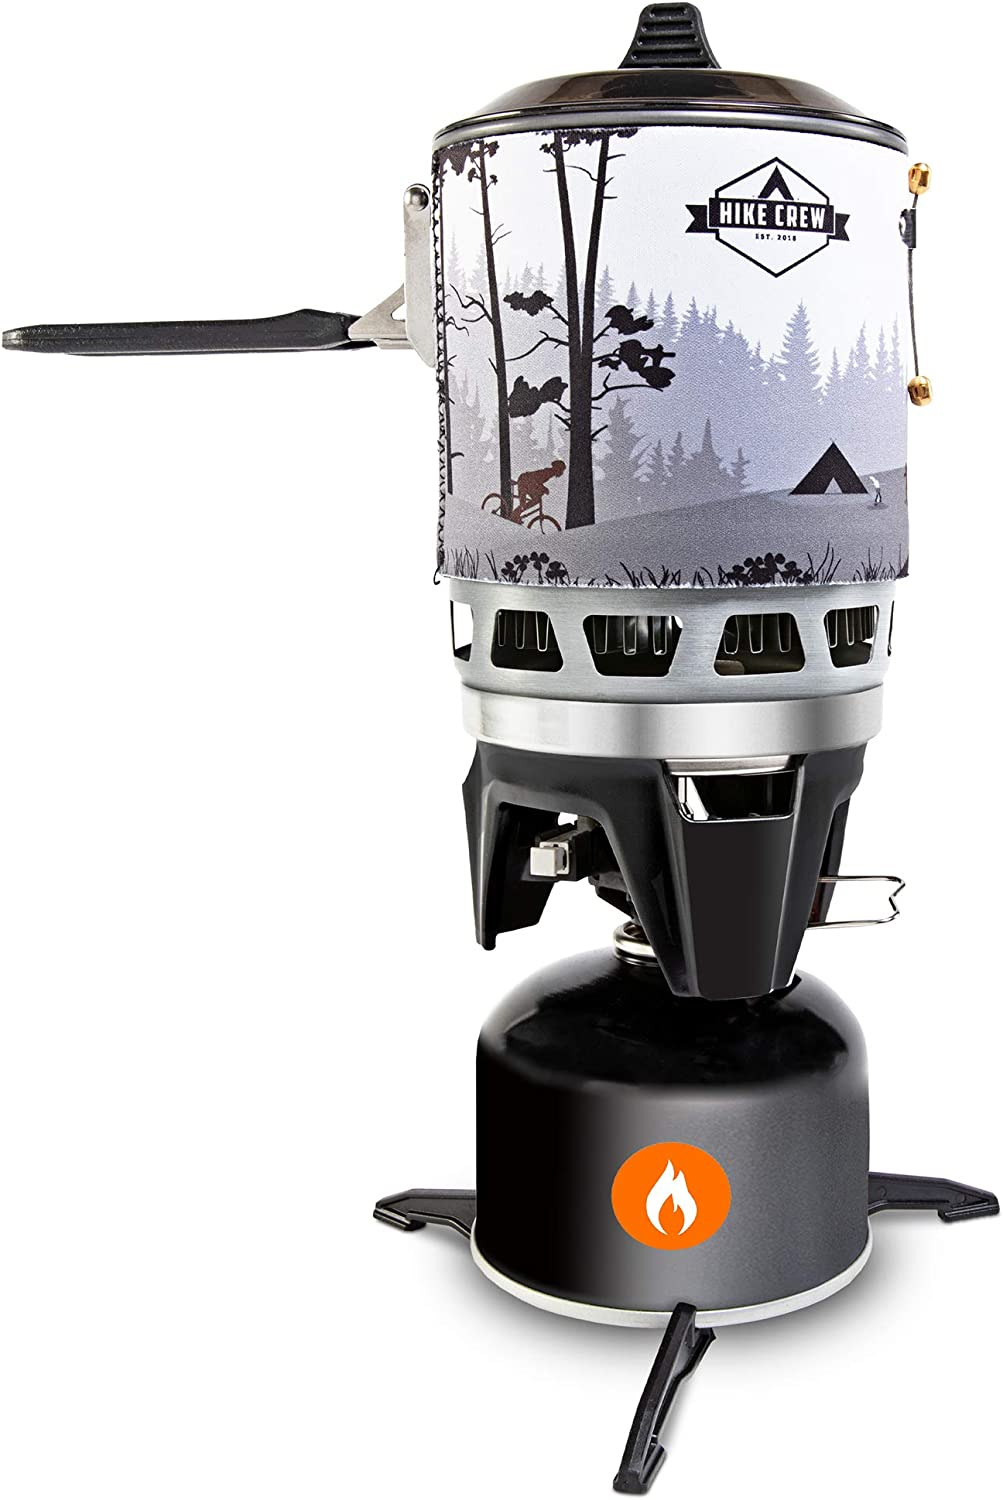 HikeCrew Portable Gas Powered Stove top & Cooking System, Compact Camping Cooktop with 0.8L Pot, Silicone Lid, Folding Handle & Carry Bag, Perfect for Camping, Hiking, Backpacking, Survival & Emergenc